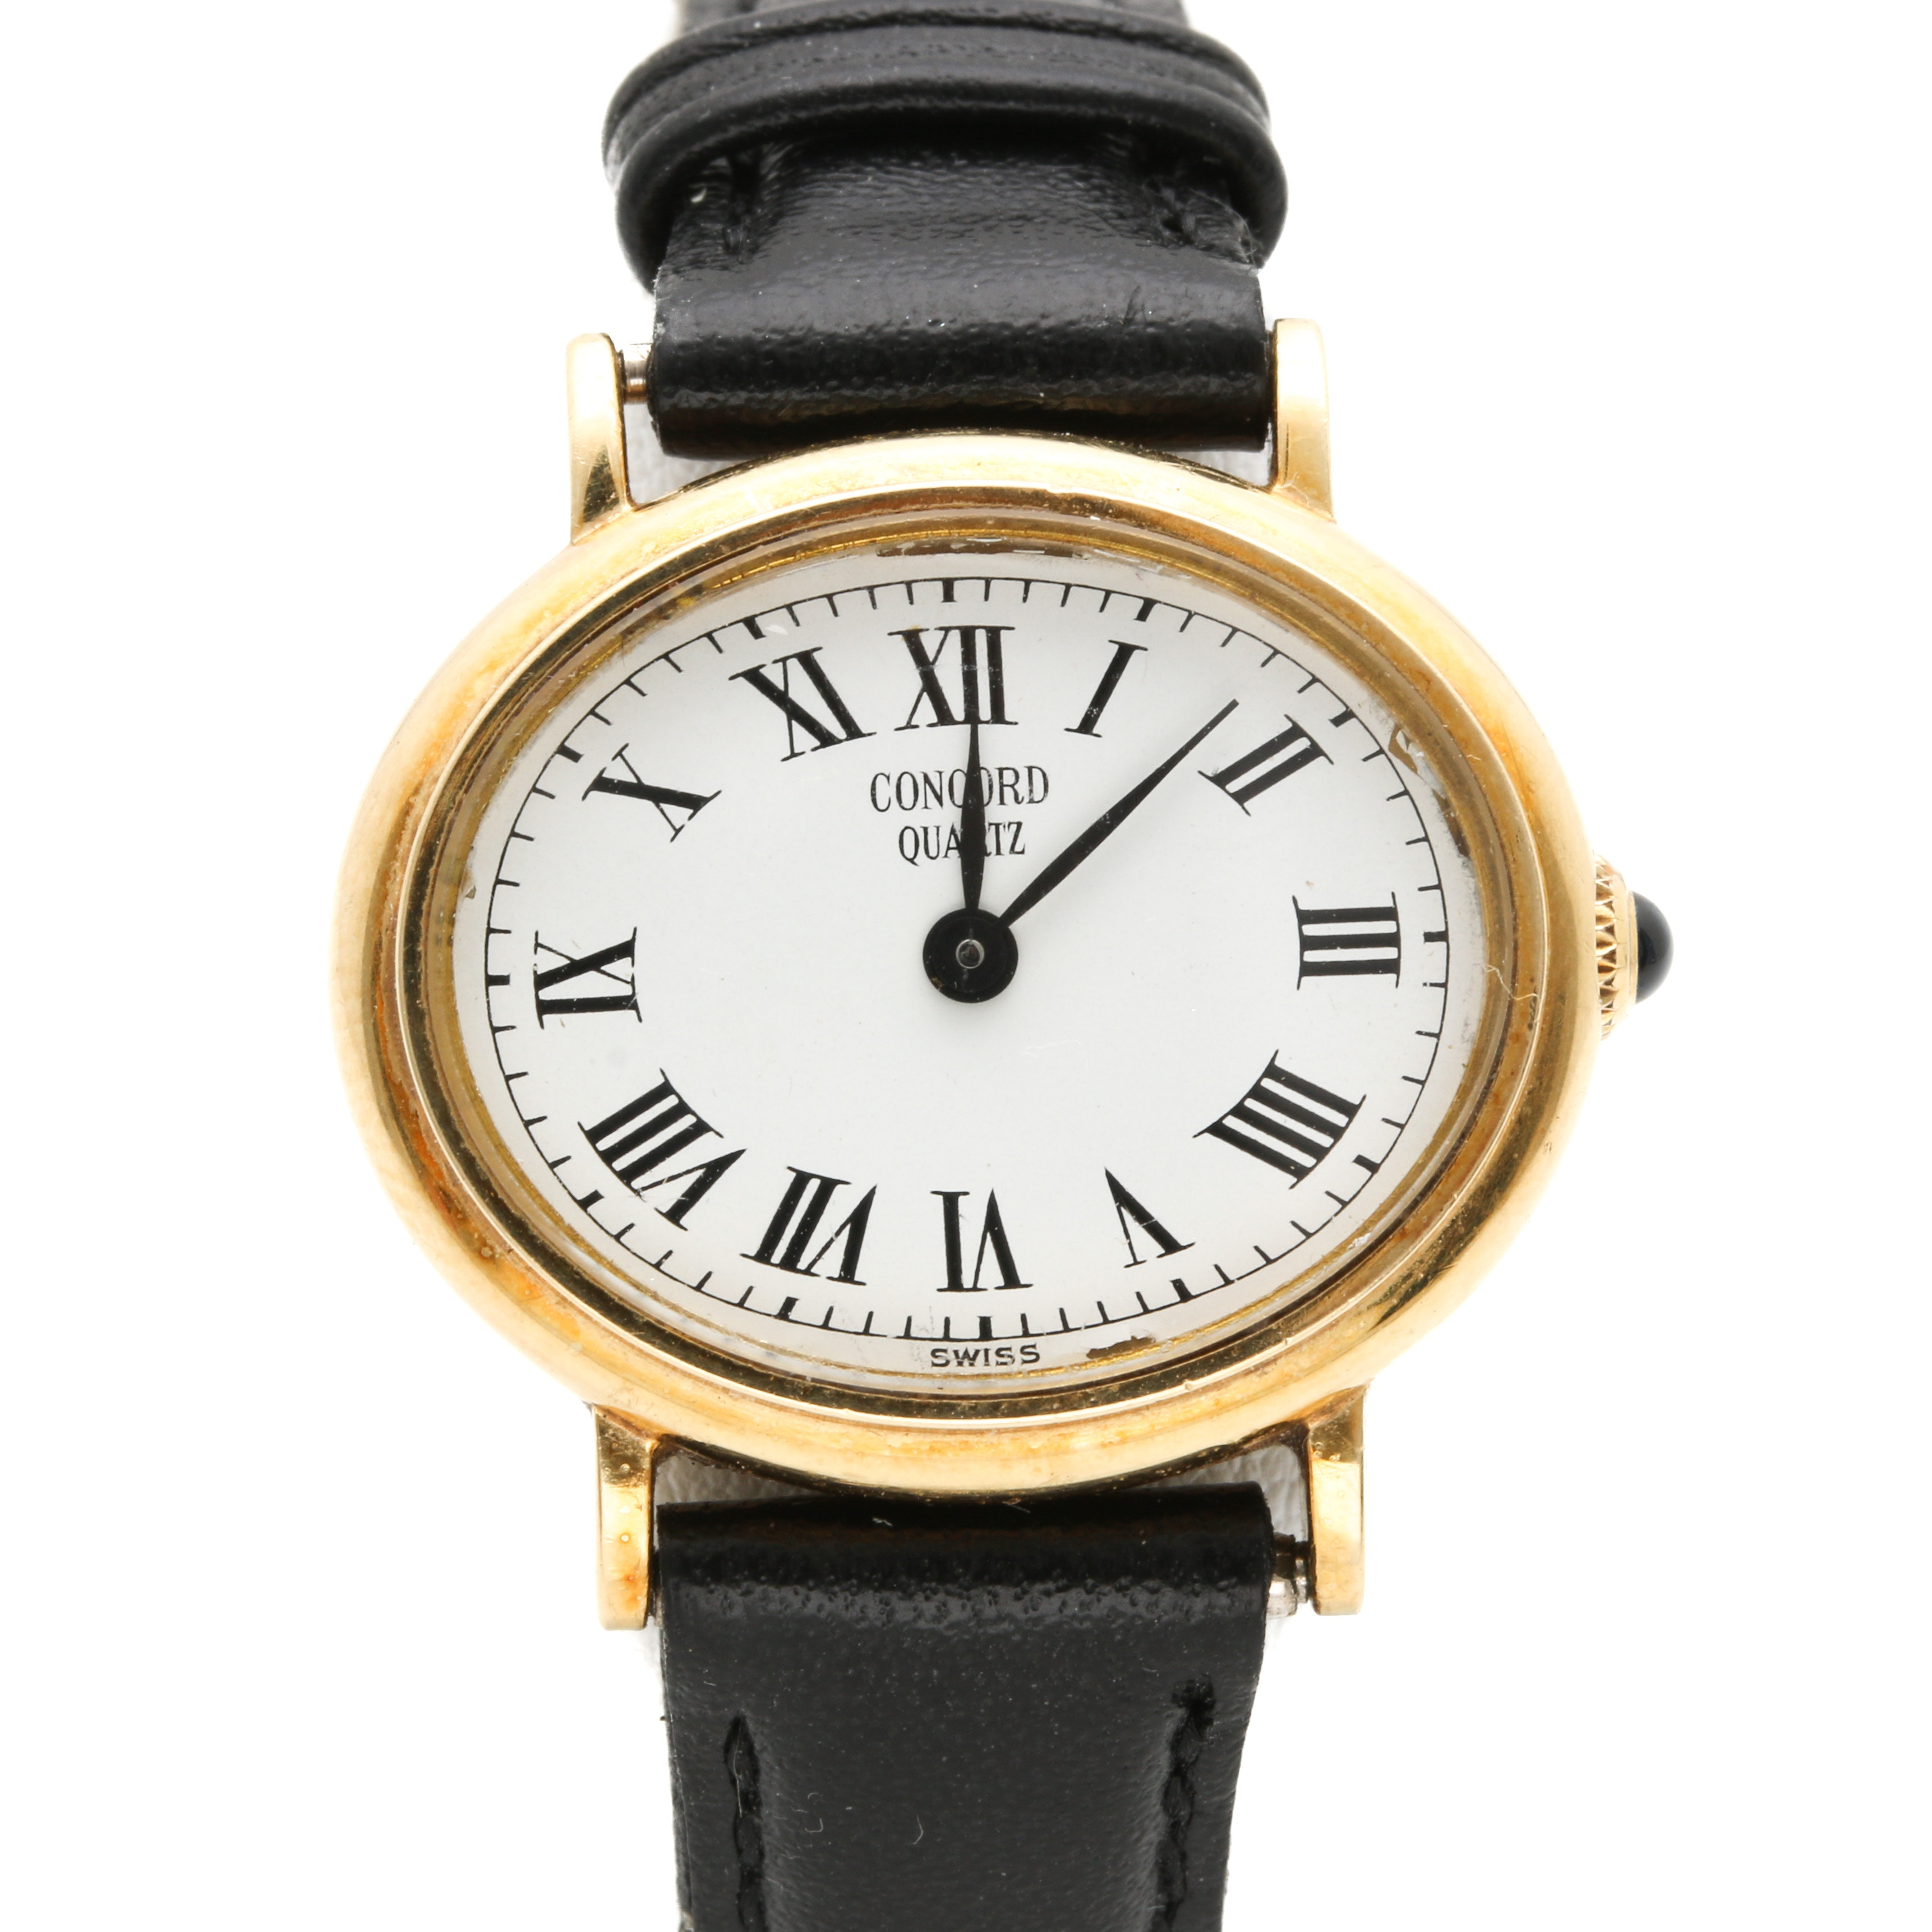 Concord Quartz 14K Yellow Gold Wristwatch With Leather Band